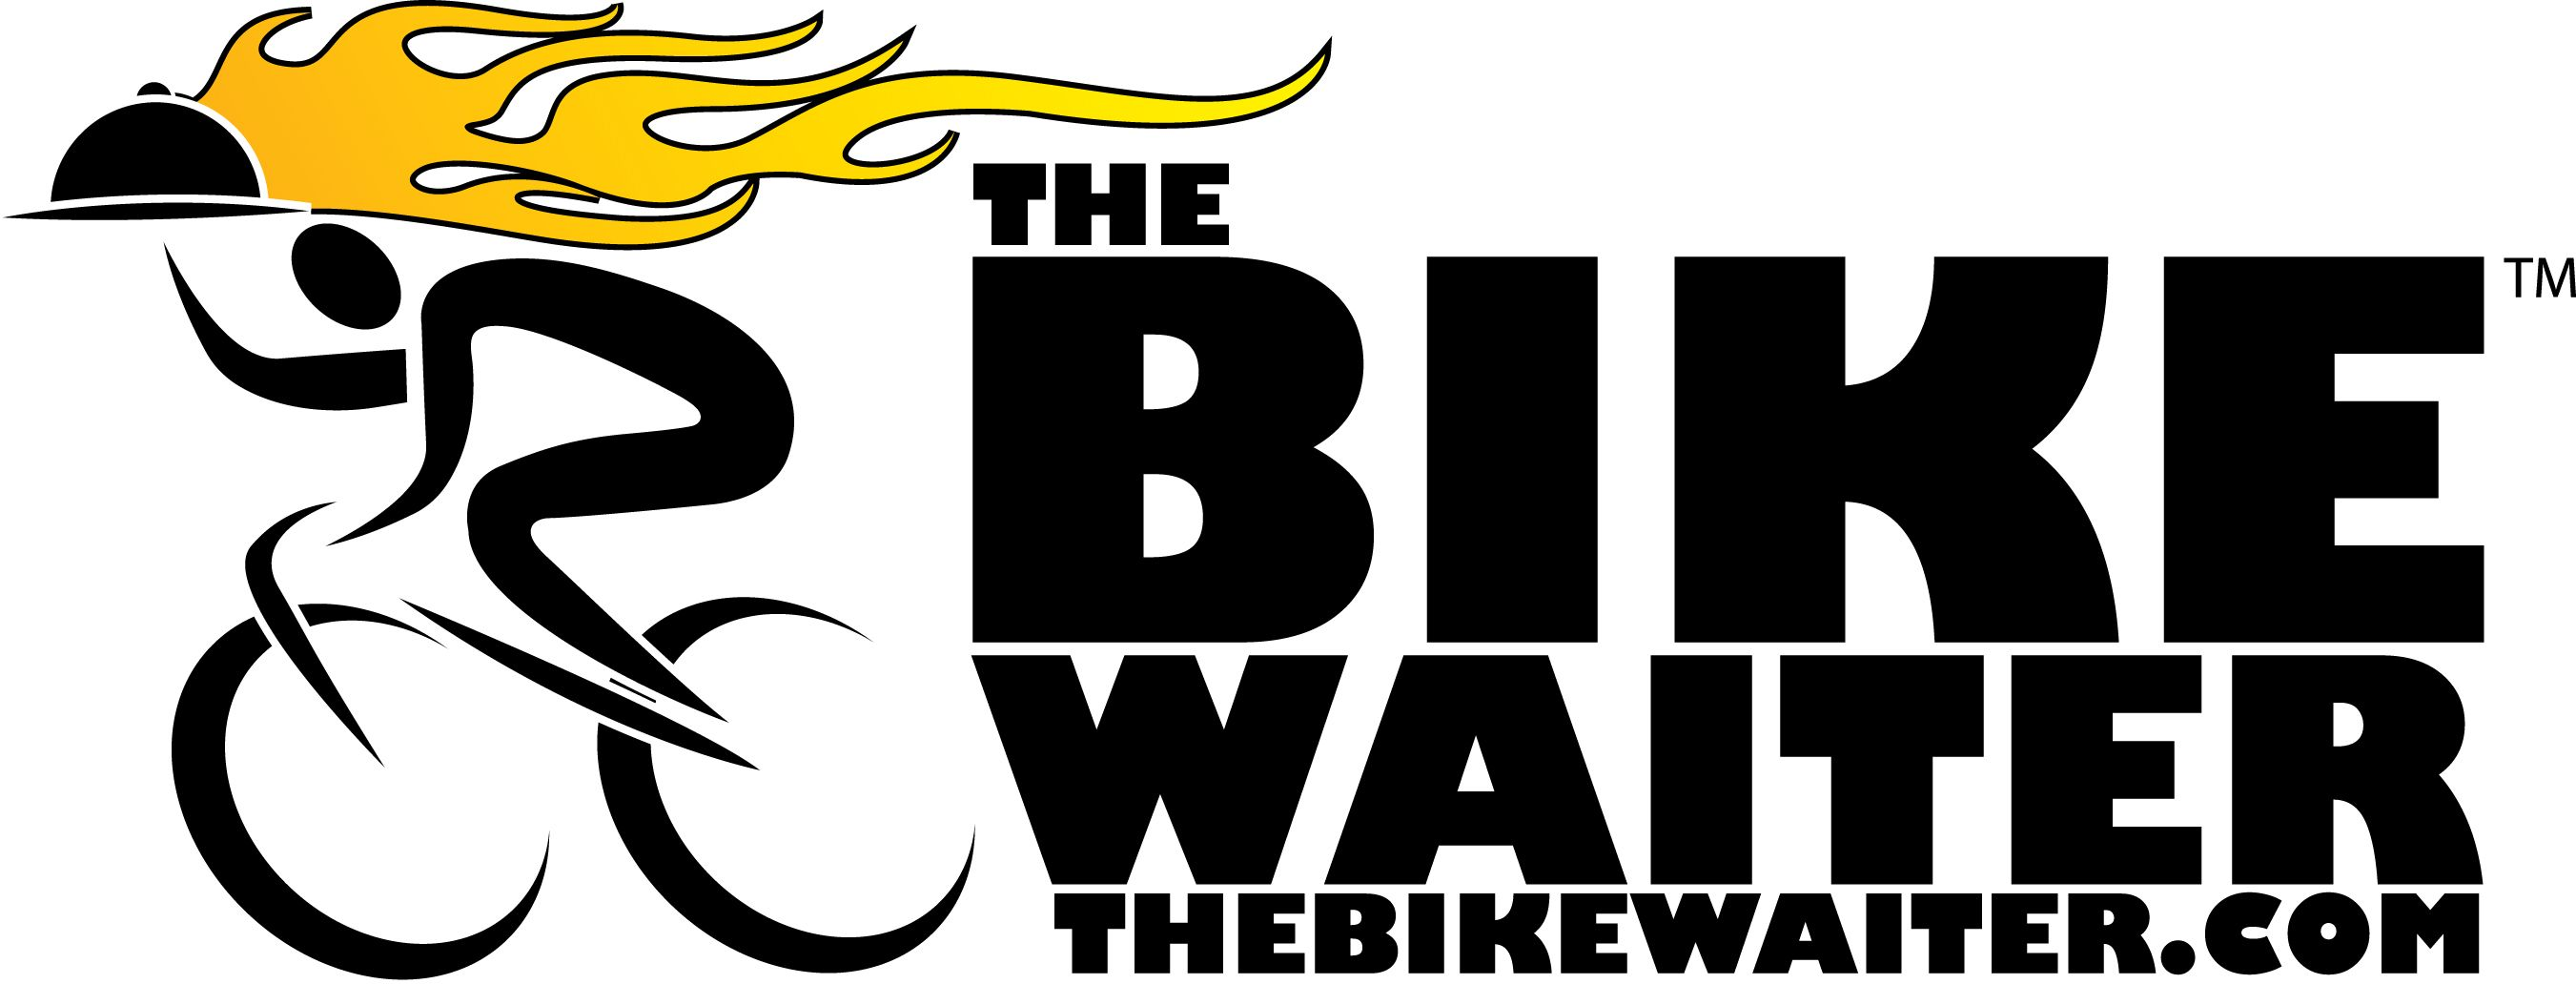 The Bike Waiter A Local San Antonio Restaurant Delivery Company Great People